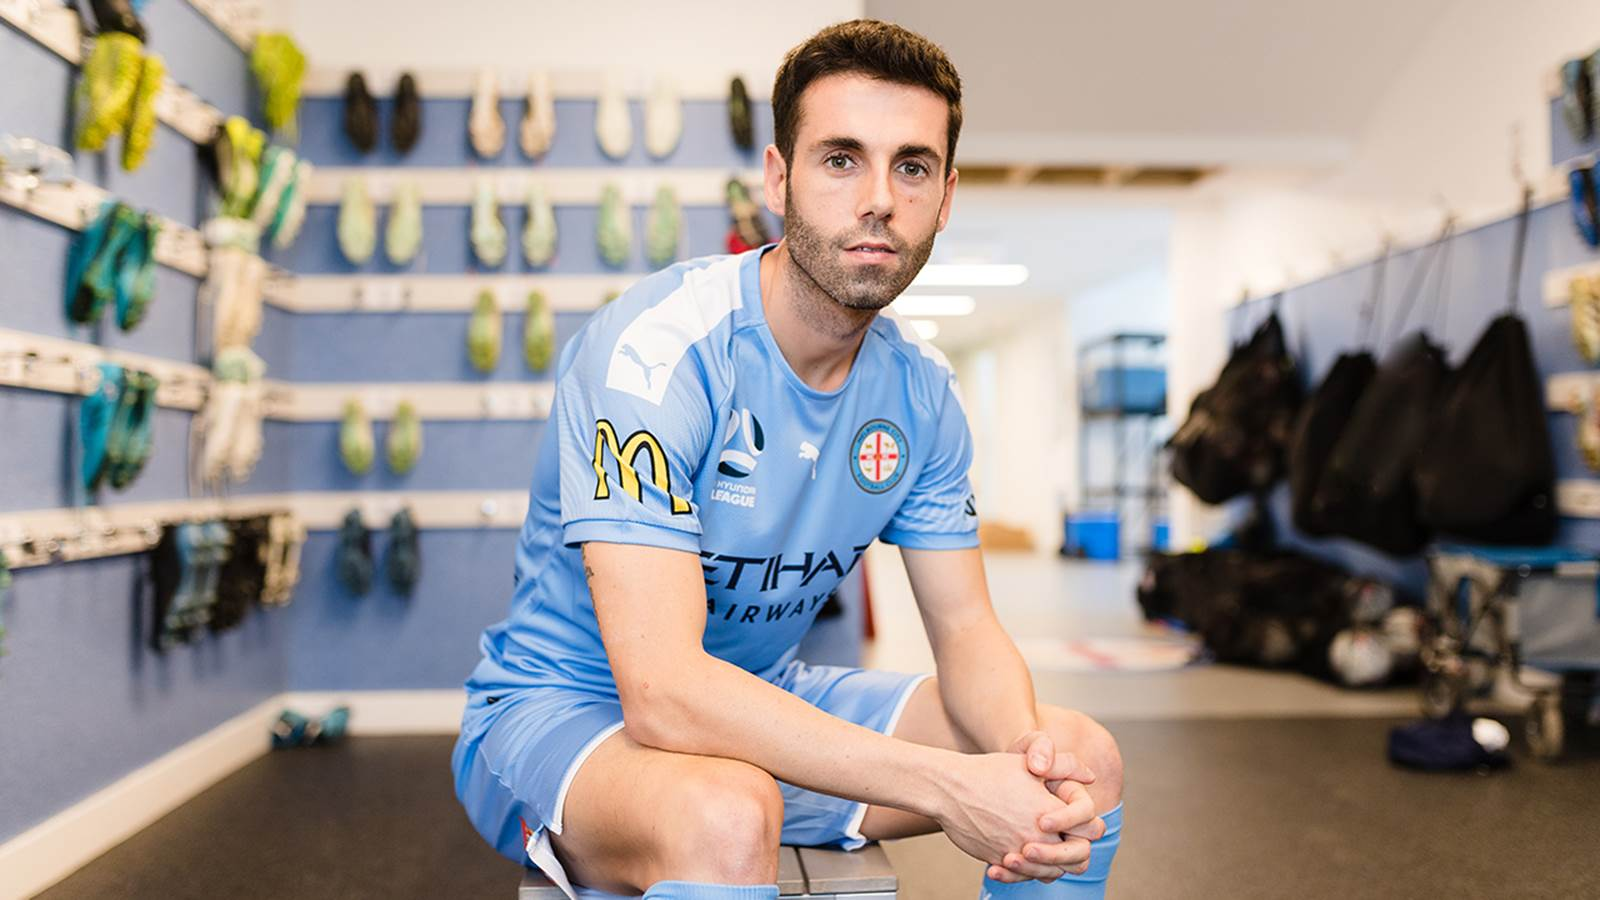 'He's a game-changer' - City snap up Spanish maestro Susaeta